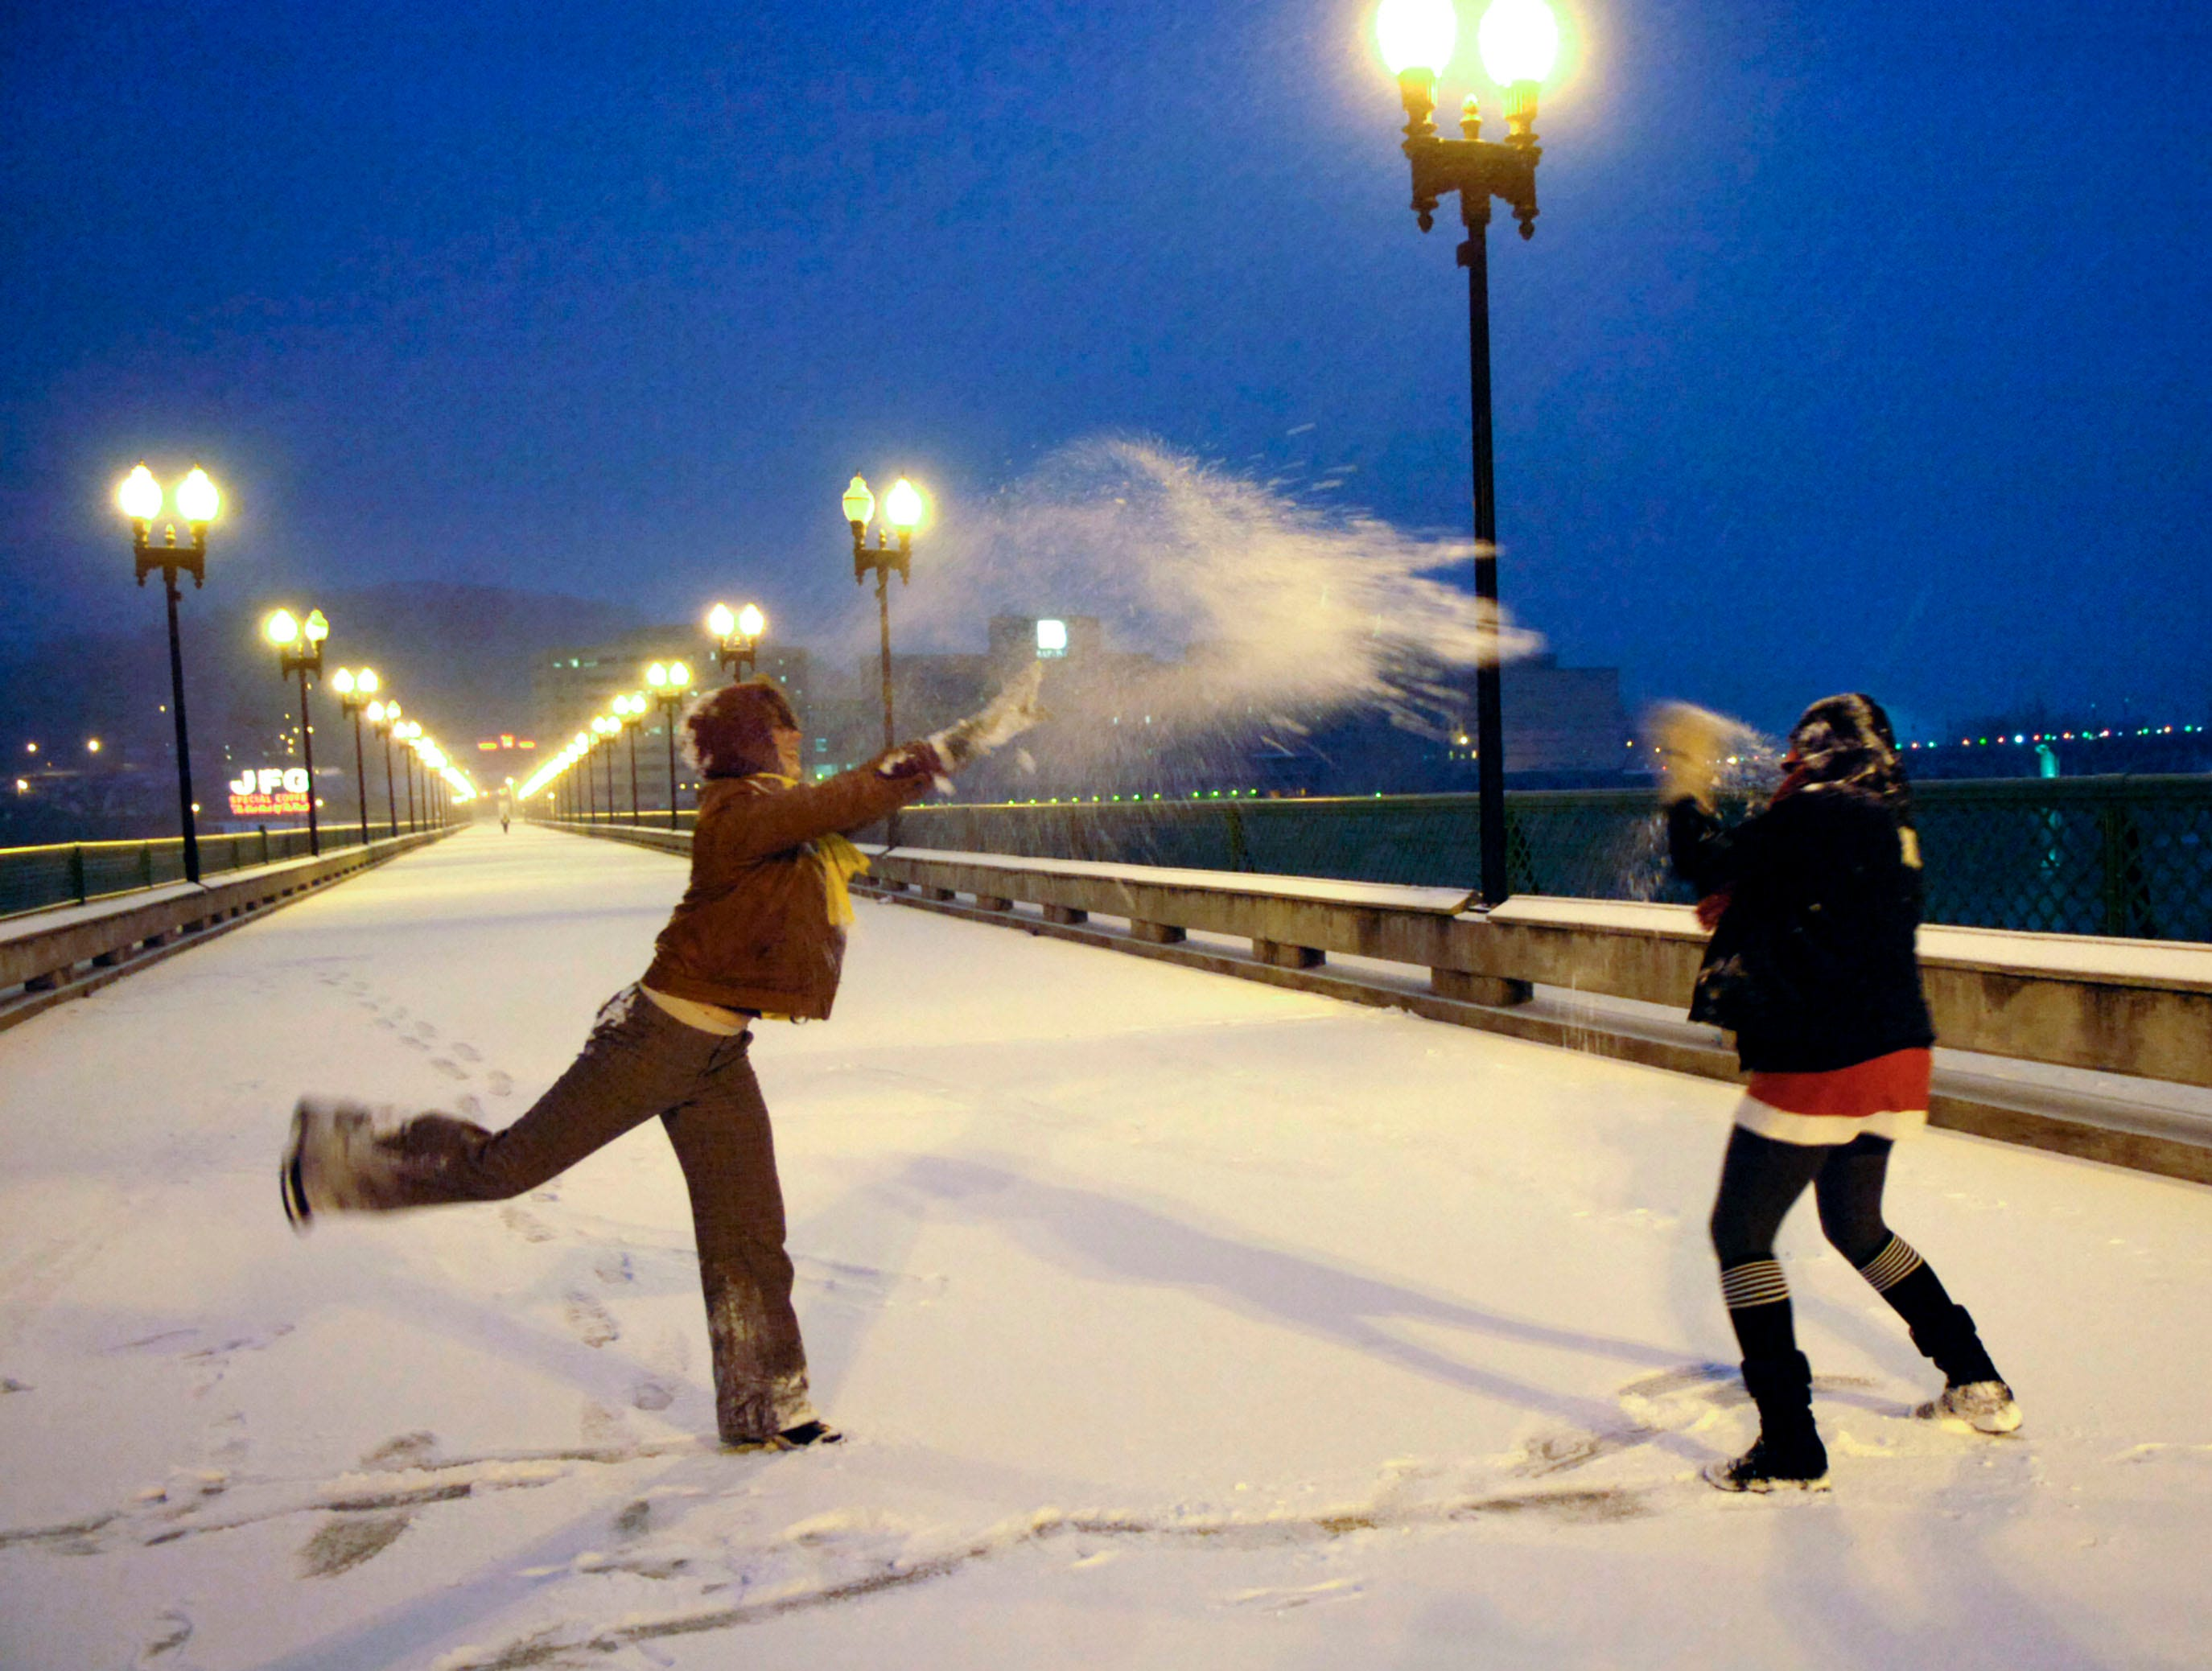 "Katherine Campbell tosses a snowball at her friend Heather Nijoli (cq) on the Gay Street Bridge in downtown Knoxville on Thursday, Jan. 7, 2010. ""It's so cool, I love the city and I love what it looks like in the snow."" says Nijoli. The friends met on the bridge, which was closed to traffic due to weather conditions, to enjoy the snow."